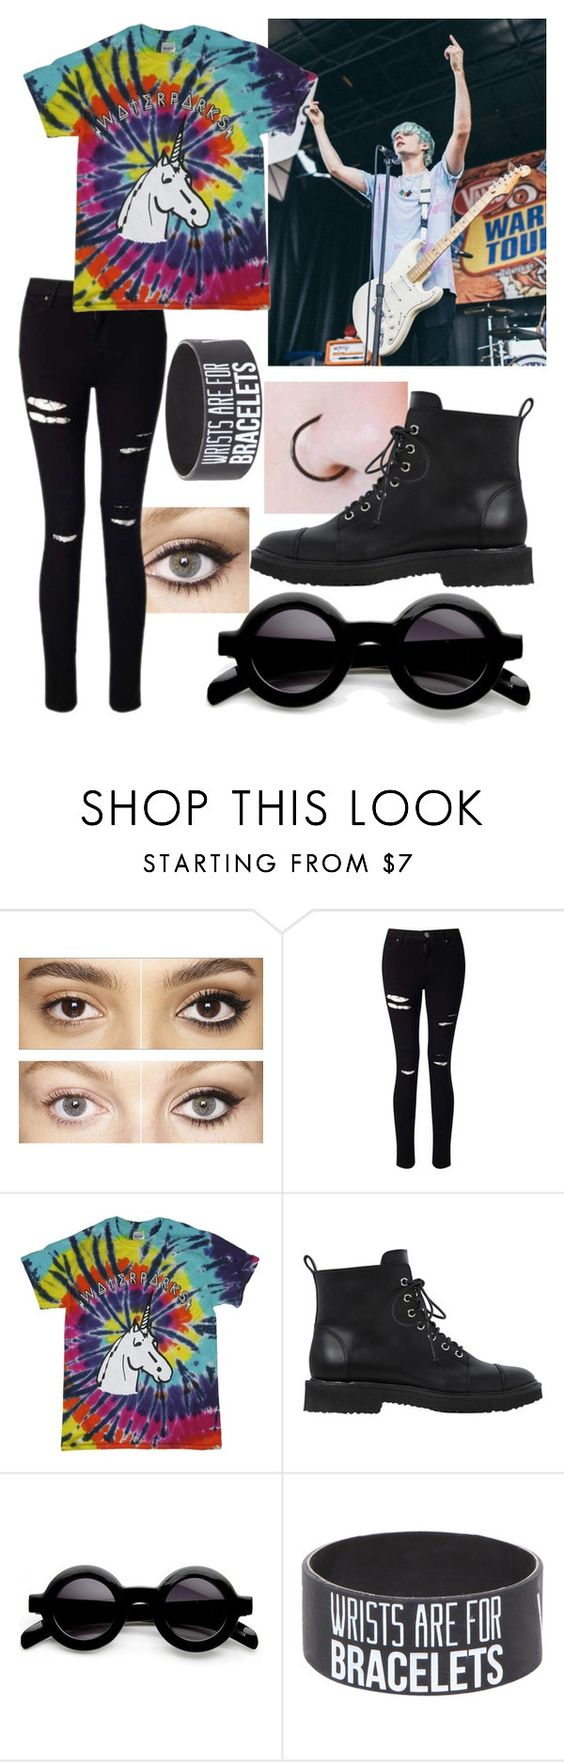 """Seeing Waterparks at Warped"" by jordan-mettam ❤ liked on Polyvore featuring Charlotte Tilbury, Miss Selfridge and Giuseppe Zanotti"